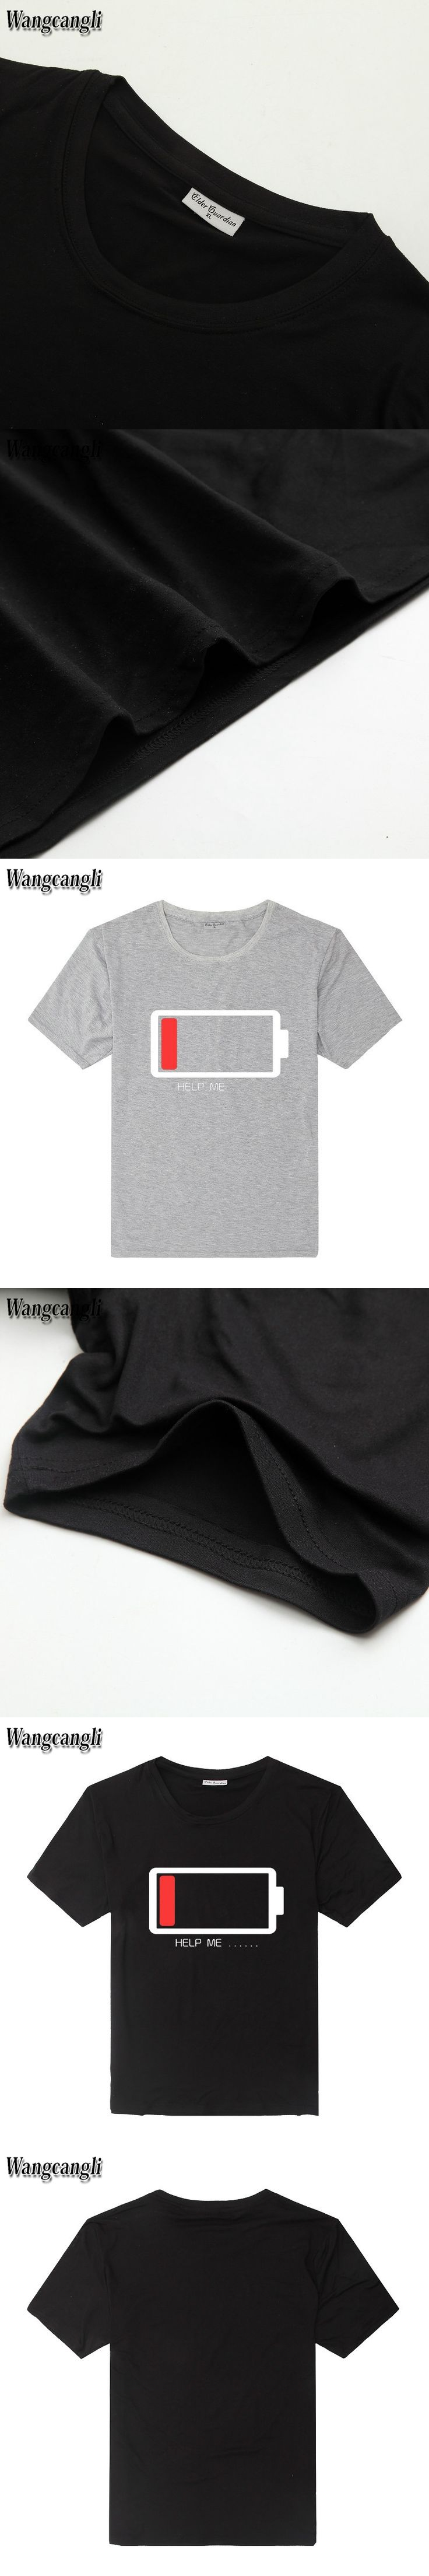 Summer fashion explosion models 3D printing battery power shortage pattern men simple cotton T shirt couple street clothing top